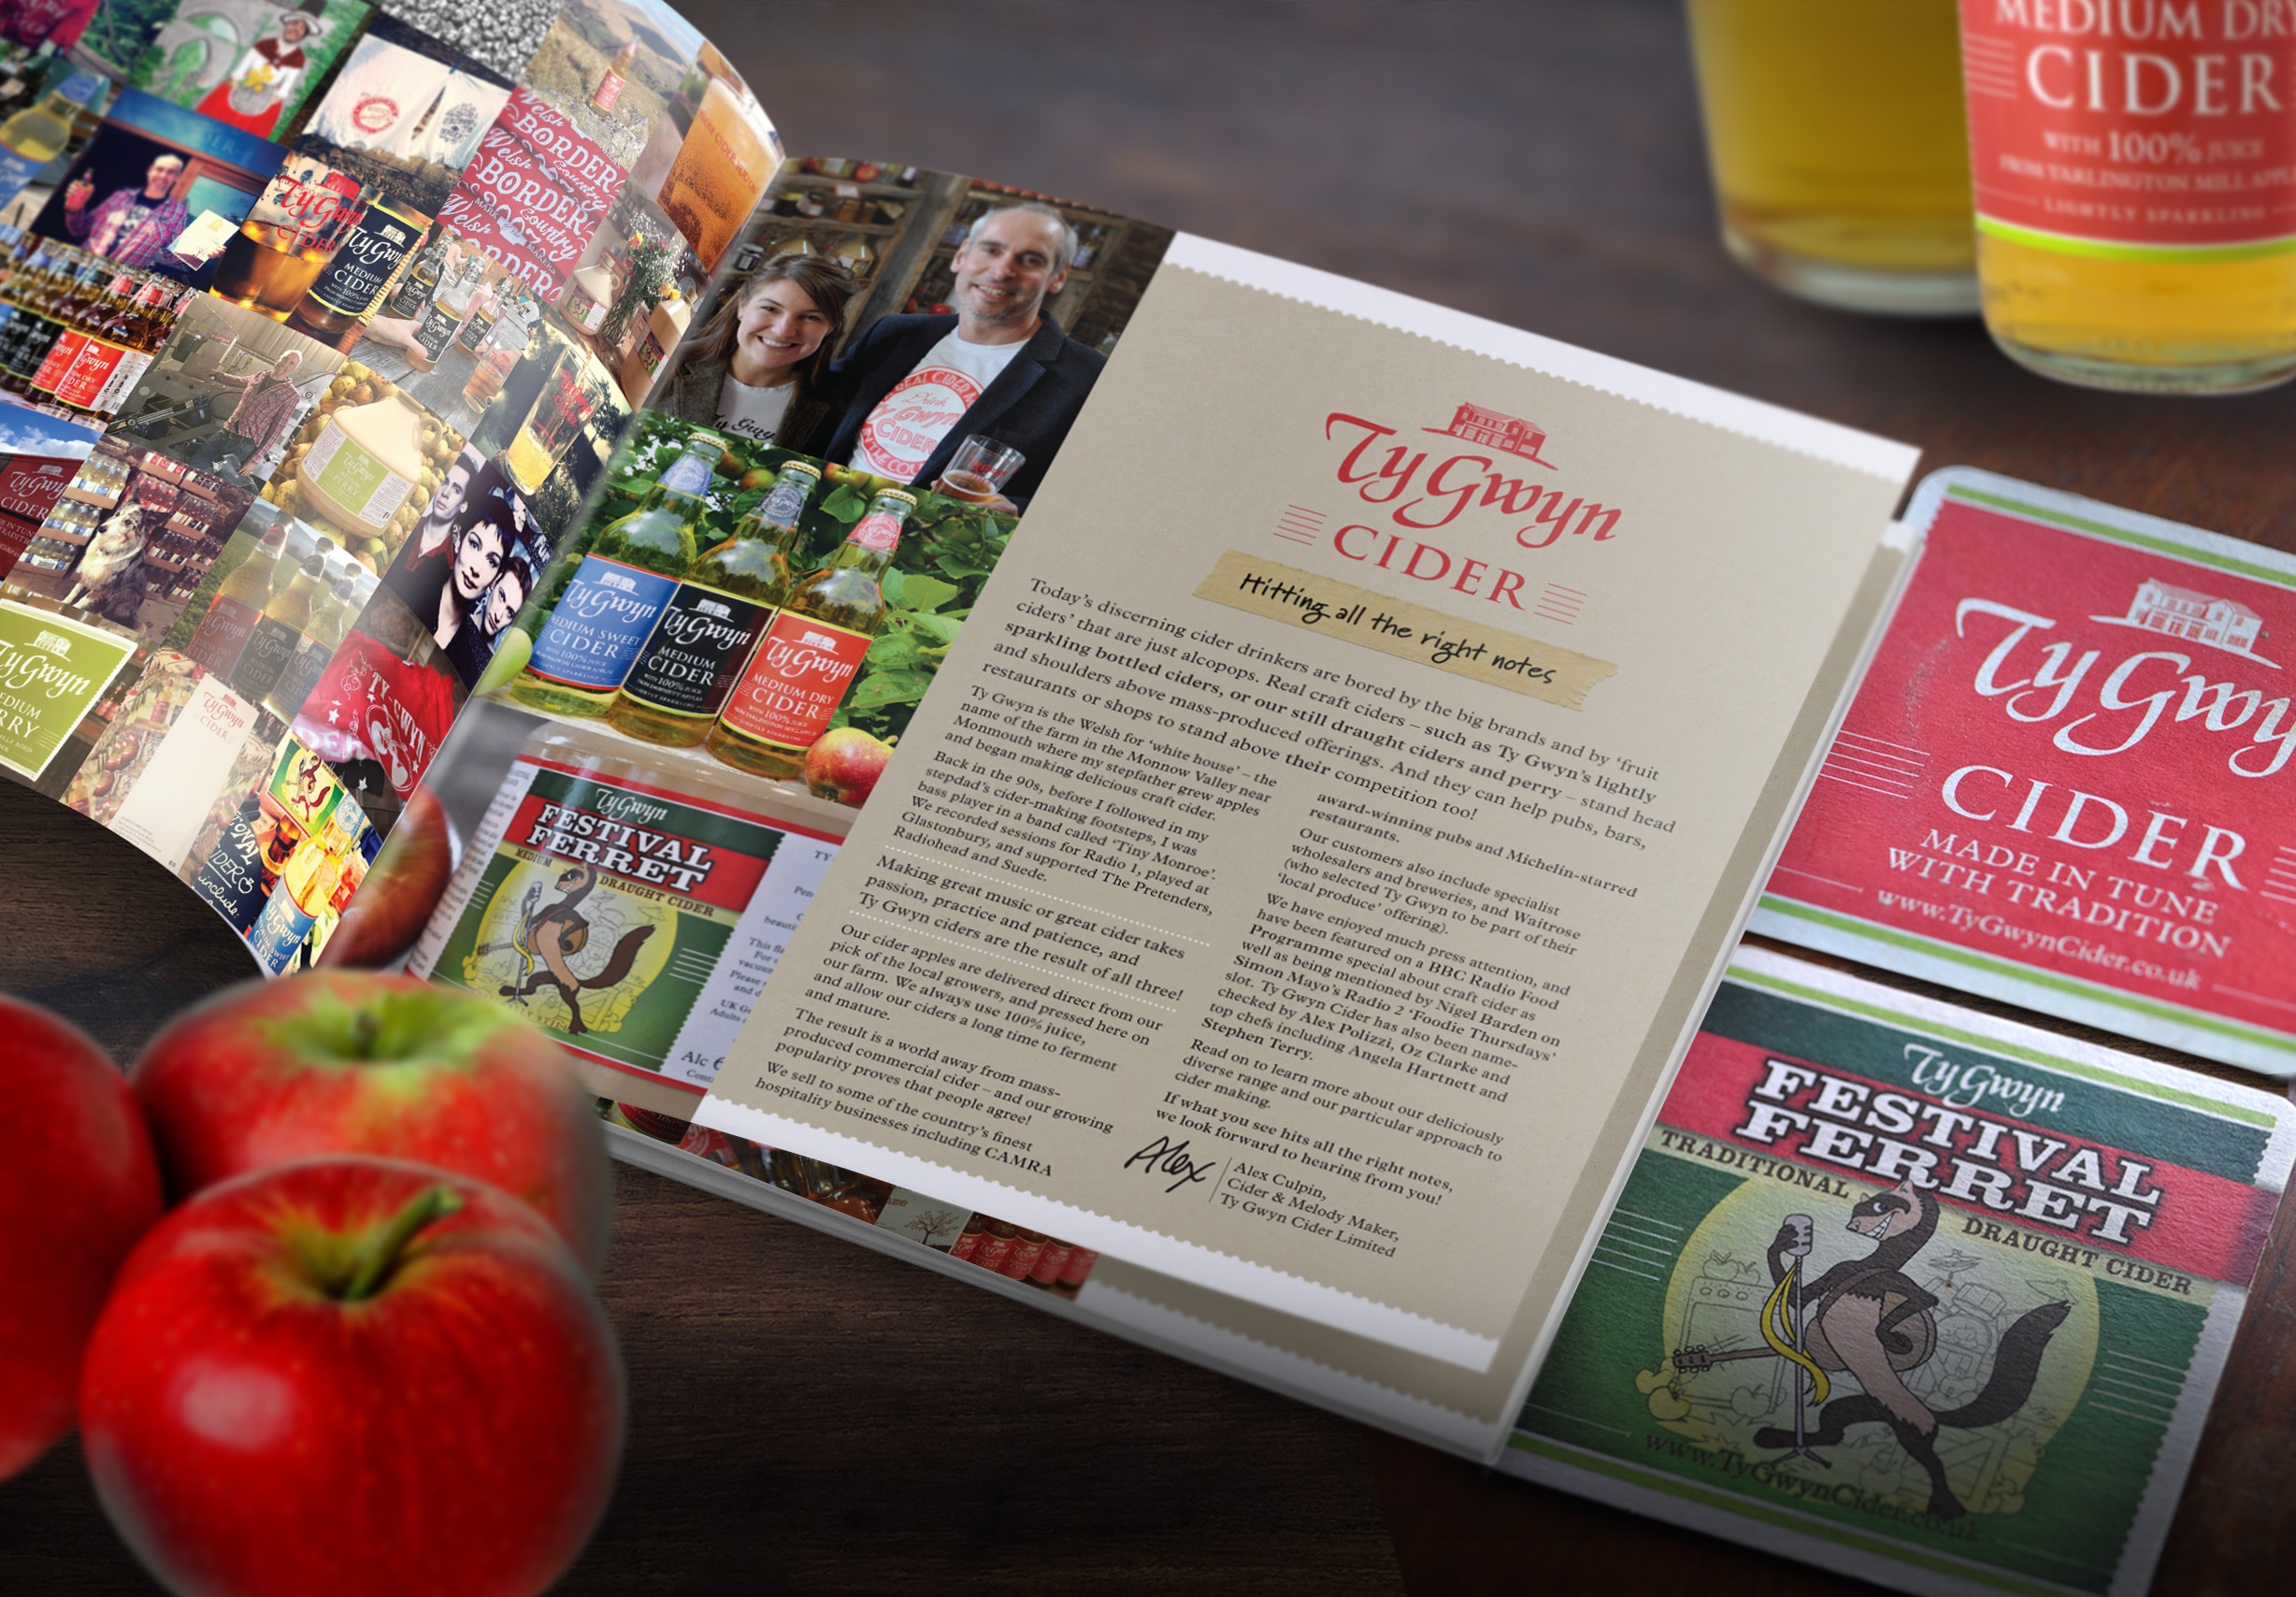 Ty Gwyn Cider branding, packaging and brochure